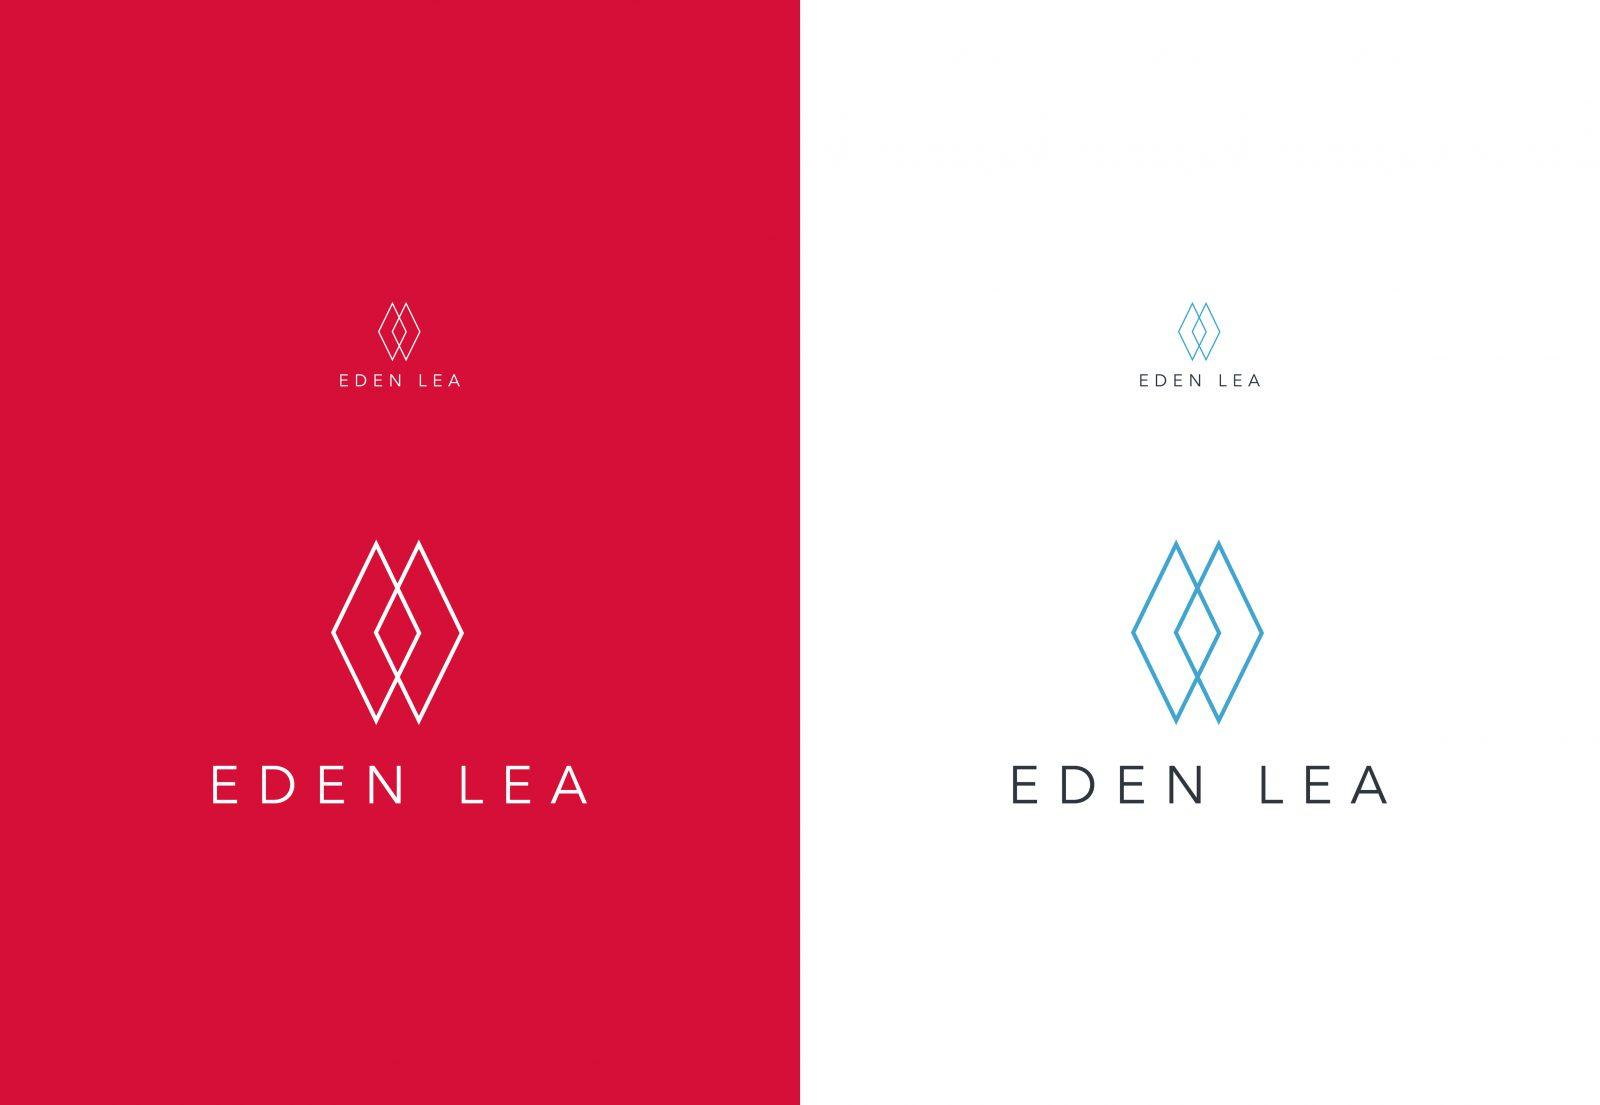 Eden Lea Recruitment Brand Identity